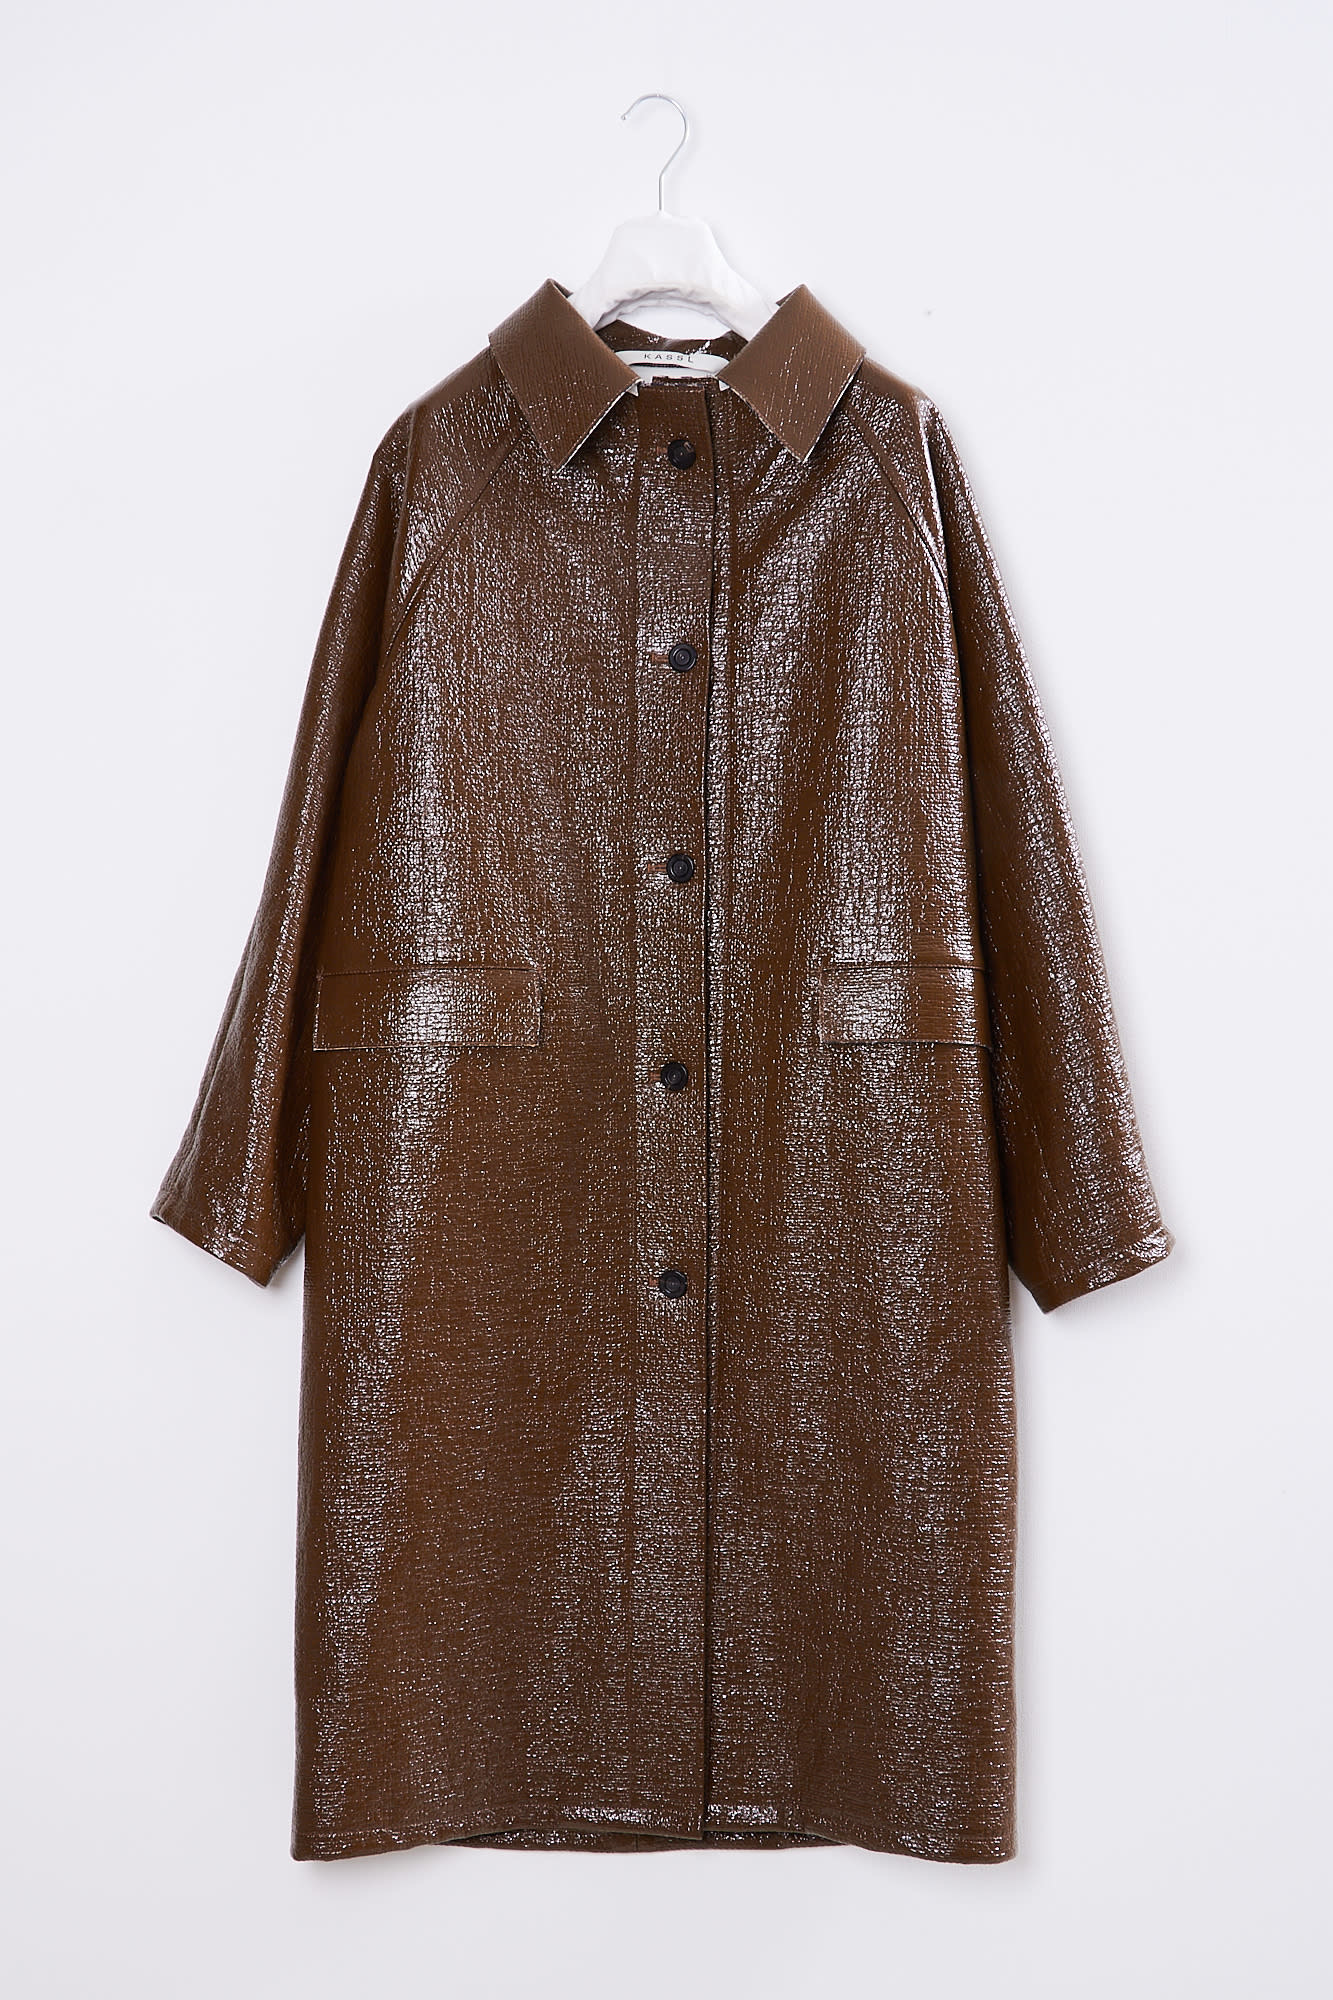 KASSL - DOUBLE FACED LACQUER BROWN CHECK BELOW THE KNEE COATDOUBLE FACED LACQUER BROWN/ CHECK BELOW THE KNEE COAT